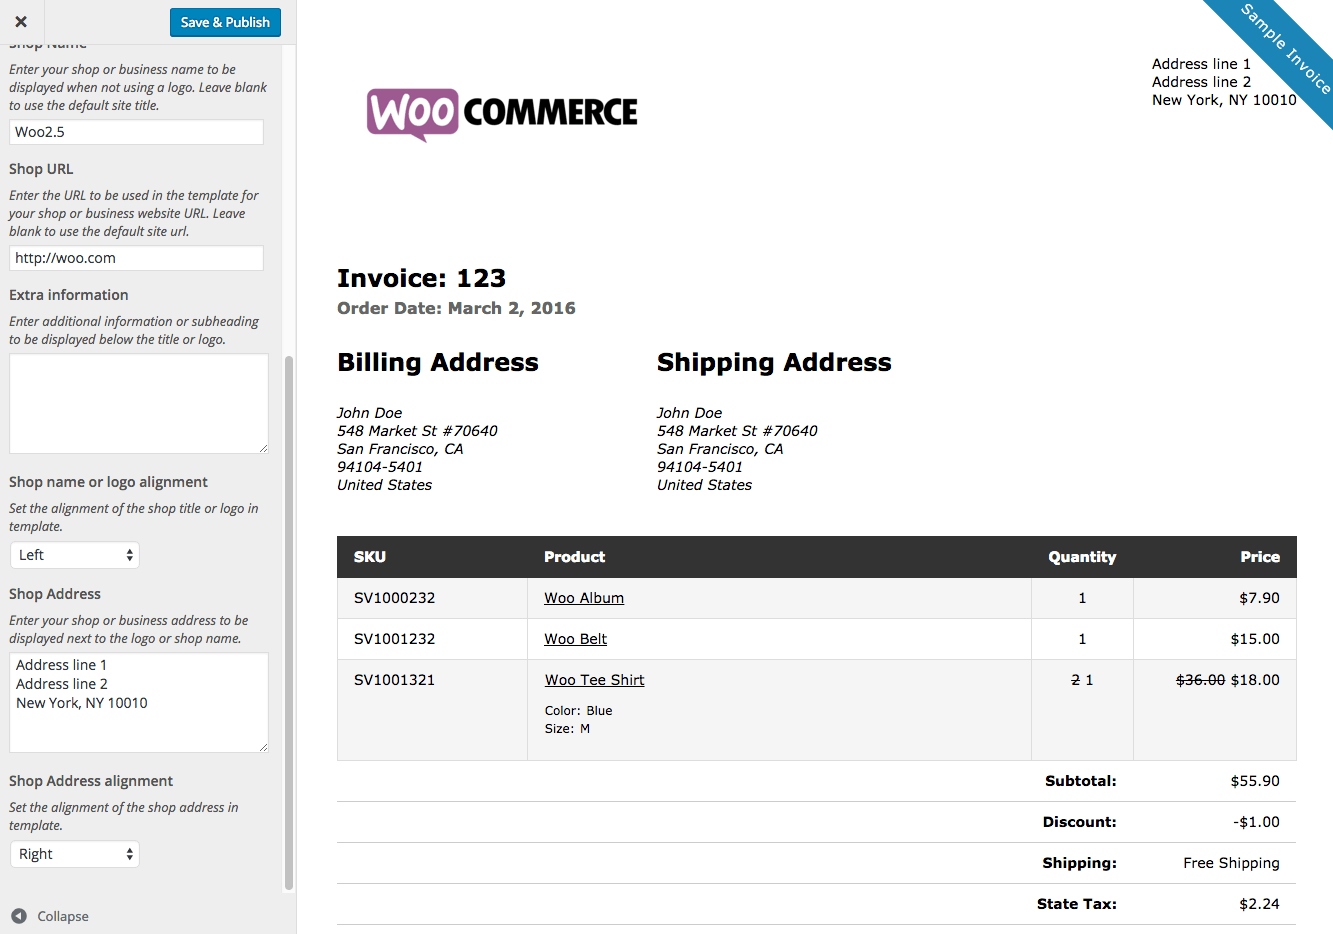 Adoringacklesus  Mesmerizing Print Invoices Amp Packing Lists  Woocommerce With Magnificent Woocommerce Print Invoices  Packing Lists Customizer With Divine Receipt Synonym Also Receipt Number On Green Card In Addition Define Gross Receipts And Receipt Wallet As Well As Scan Receipts Into Quickbooks Additionally Email Receipt Template From Woocommercecom With Adoringacklesus  Magnificent Print Invoices Amp Packing Lists  Woocommerce With Divine Woocommerce Print Invoices  Packing Lists Customizer And Mesmerizing Receipt Synonym Also Receipt Number On Green Card In Addition Define Gross Receipts From Woocommercecom